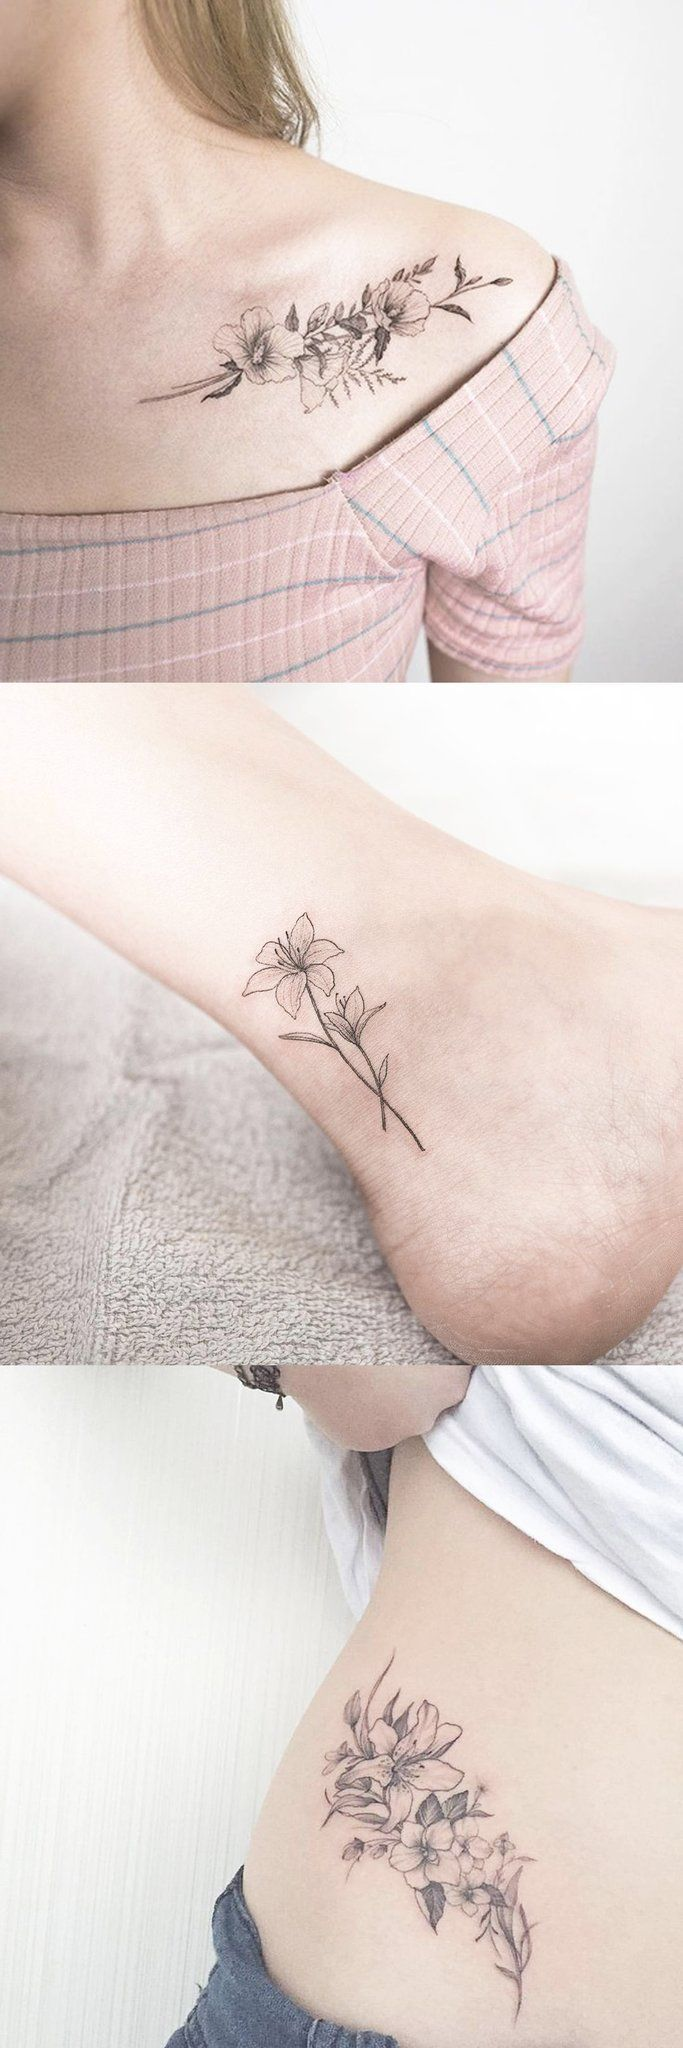 Delicate Sketched Flower Shoulder Tattoo Ideas – Wild Realistic Floral Ankle Tatt – MyBodiArt.com